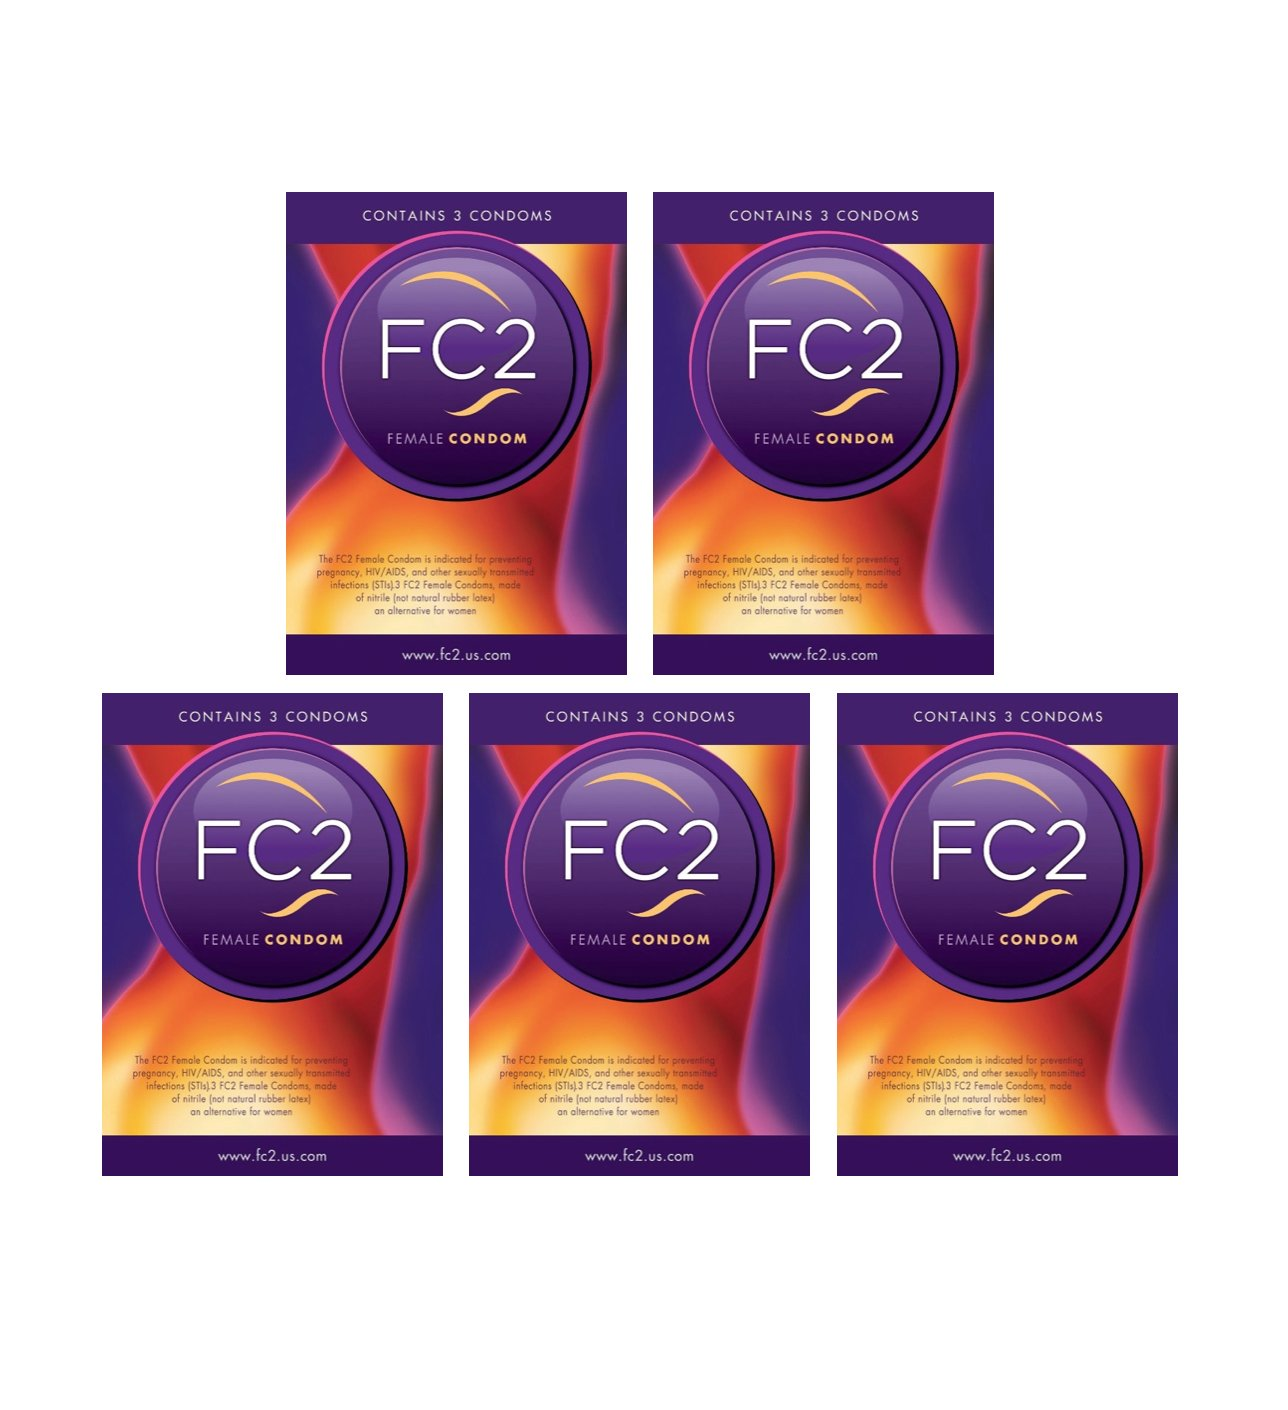 Female Condoms By FC2 (15 Pack) by FC Female Condom